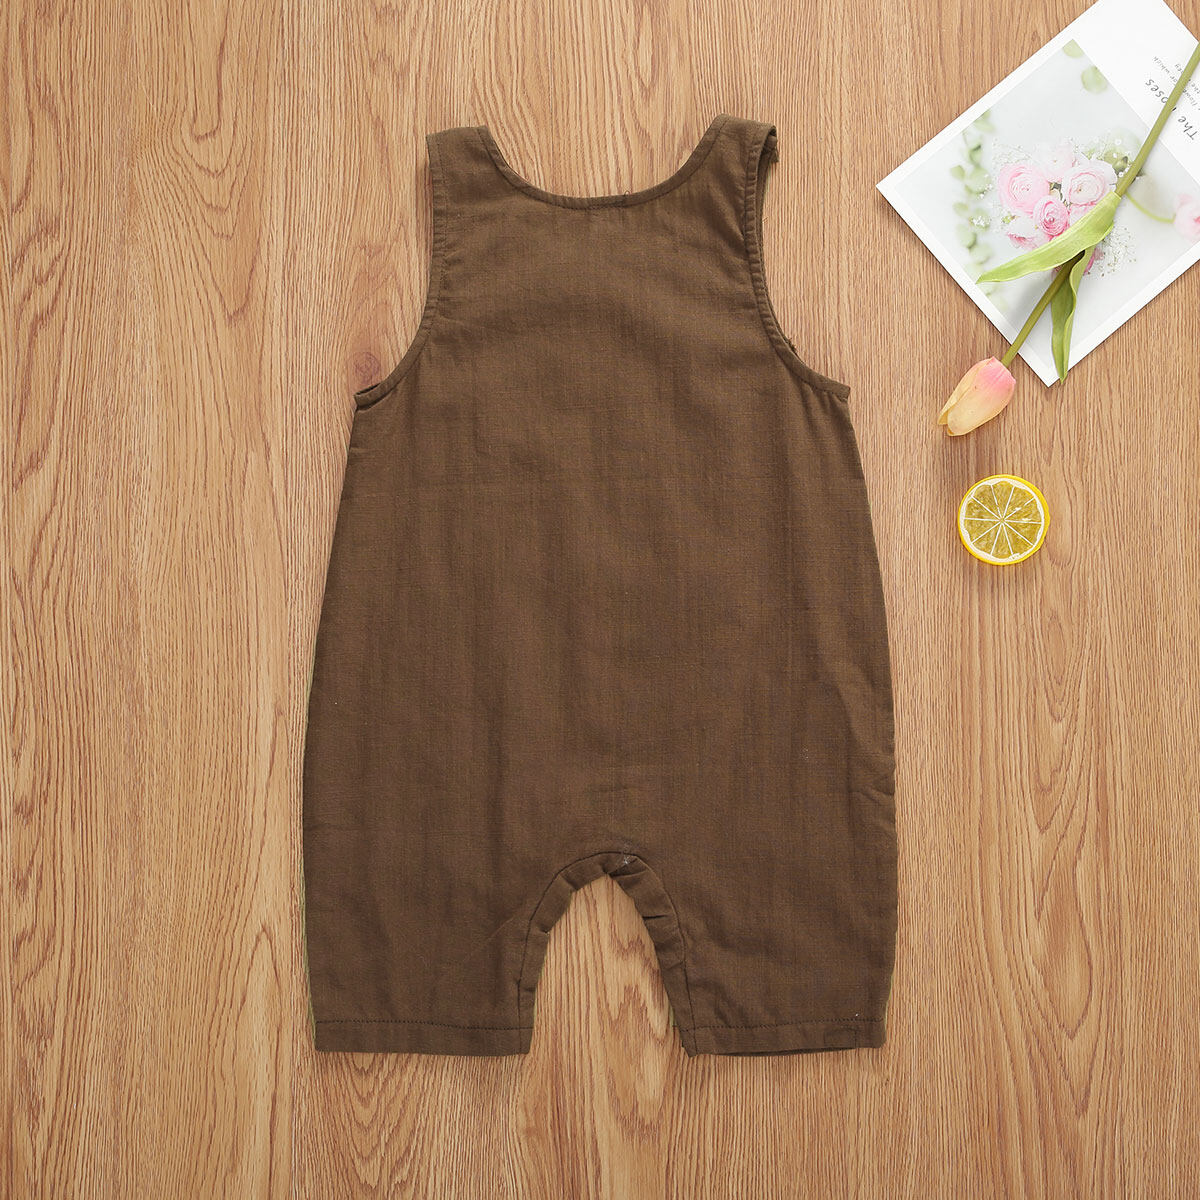 GI Solid Color Infant Baby Boys Girls Sleeveless Cotton Summer Romper Jumpsuit